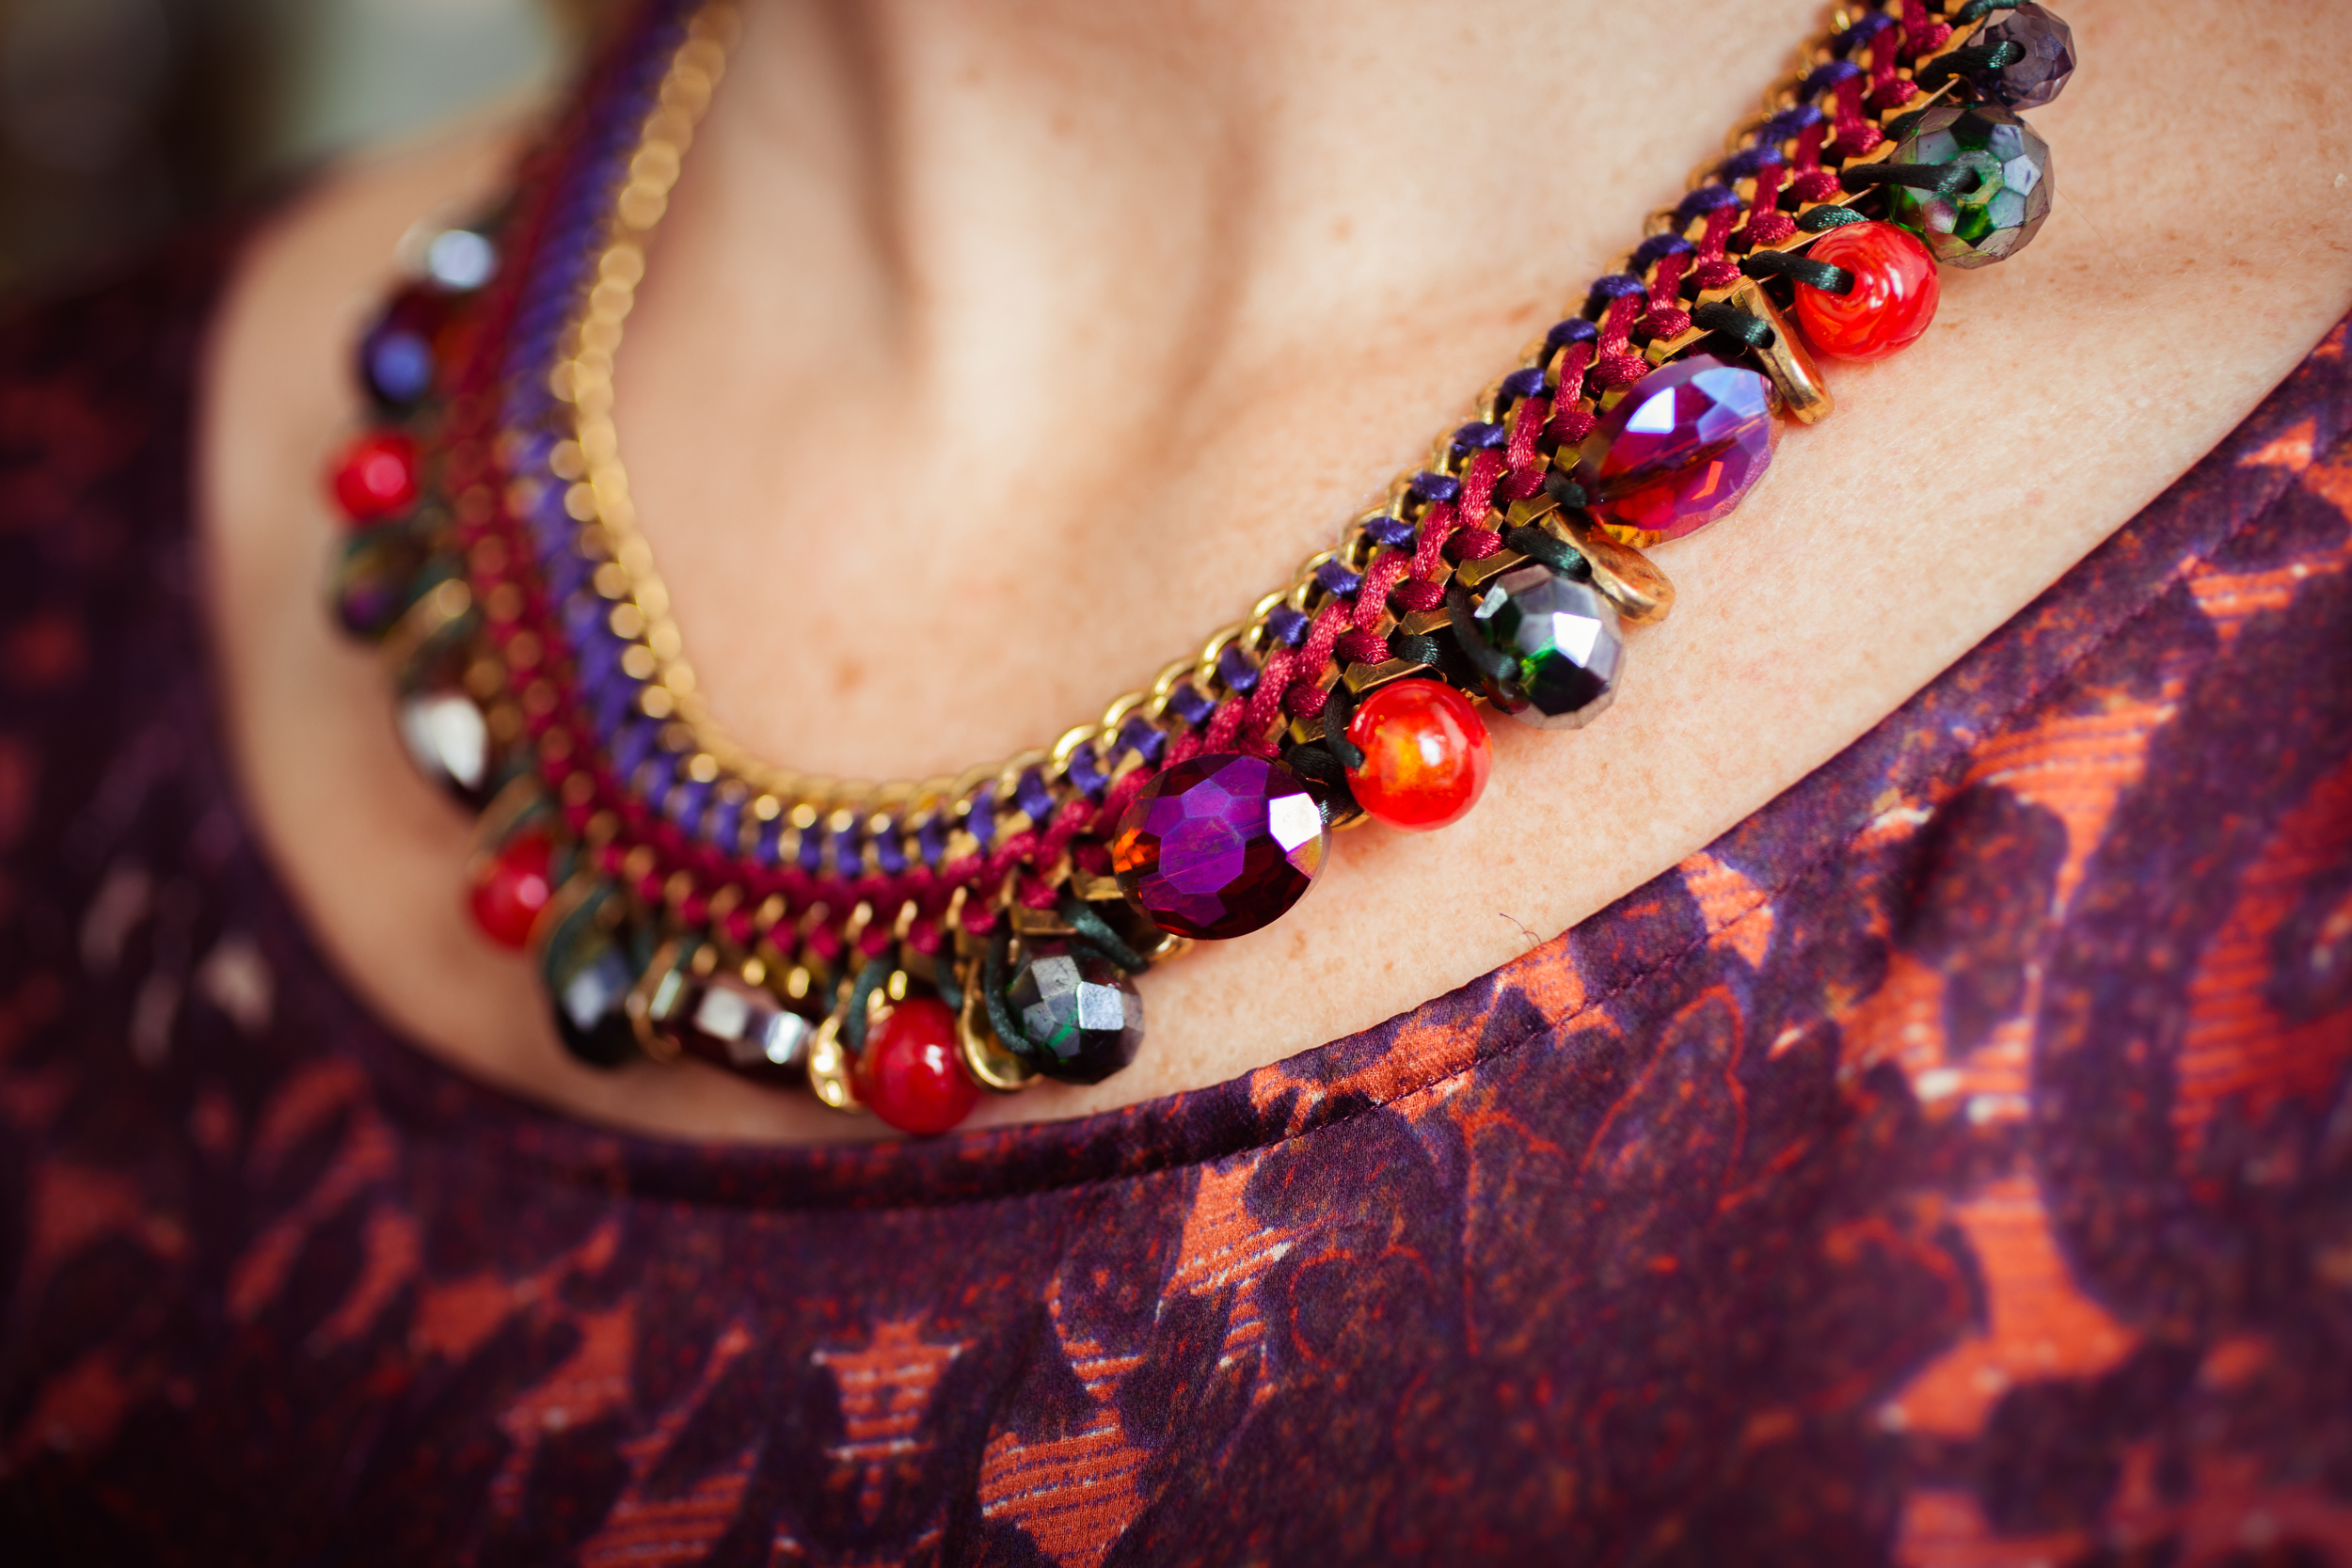 mademoiselle jules necklace axara paris fashion blod trends